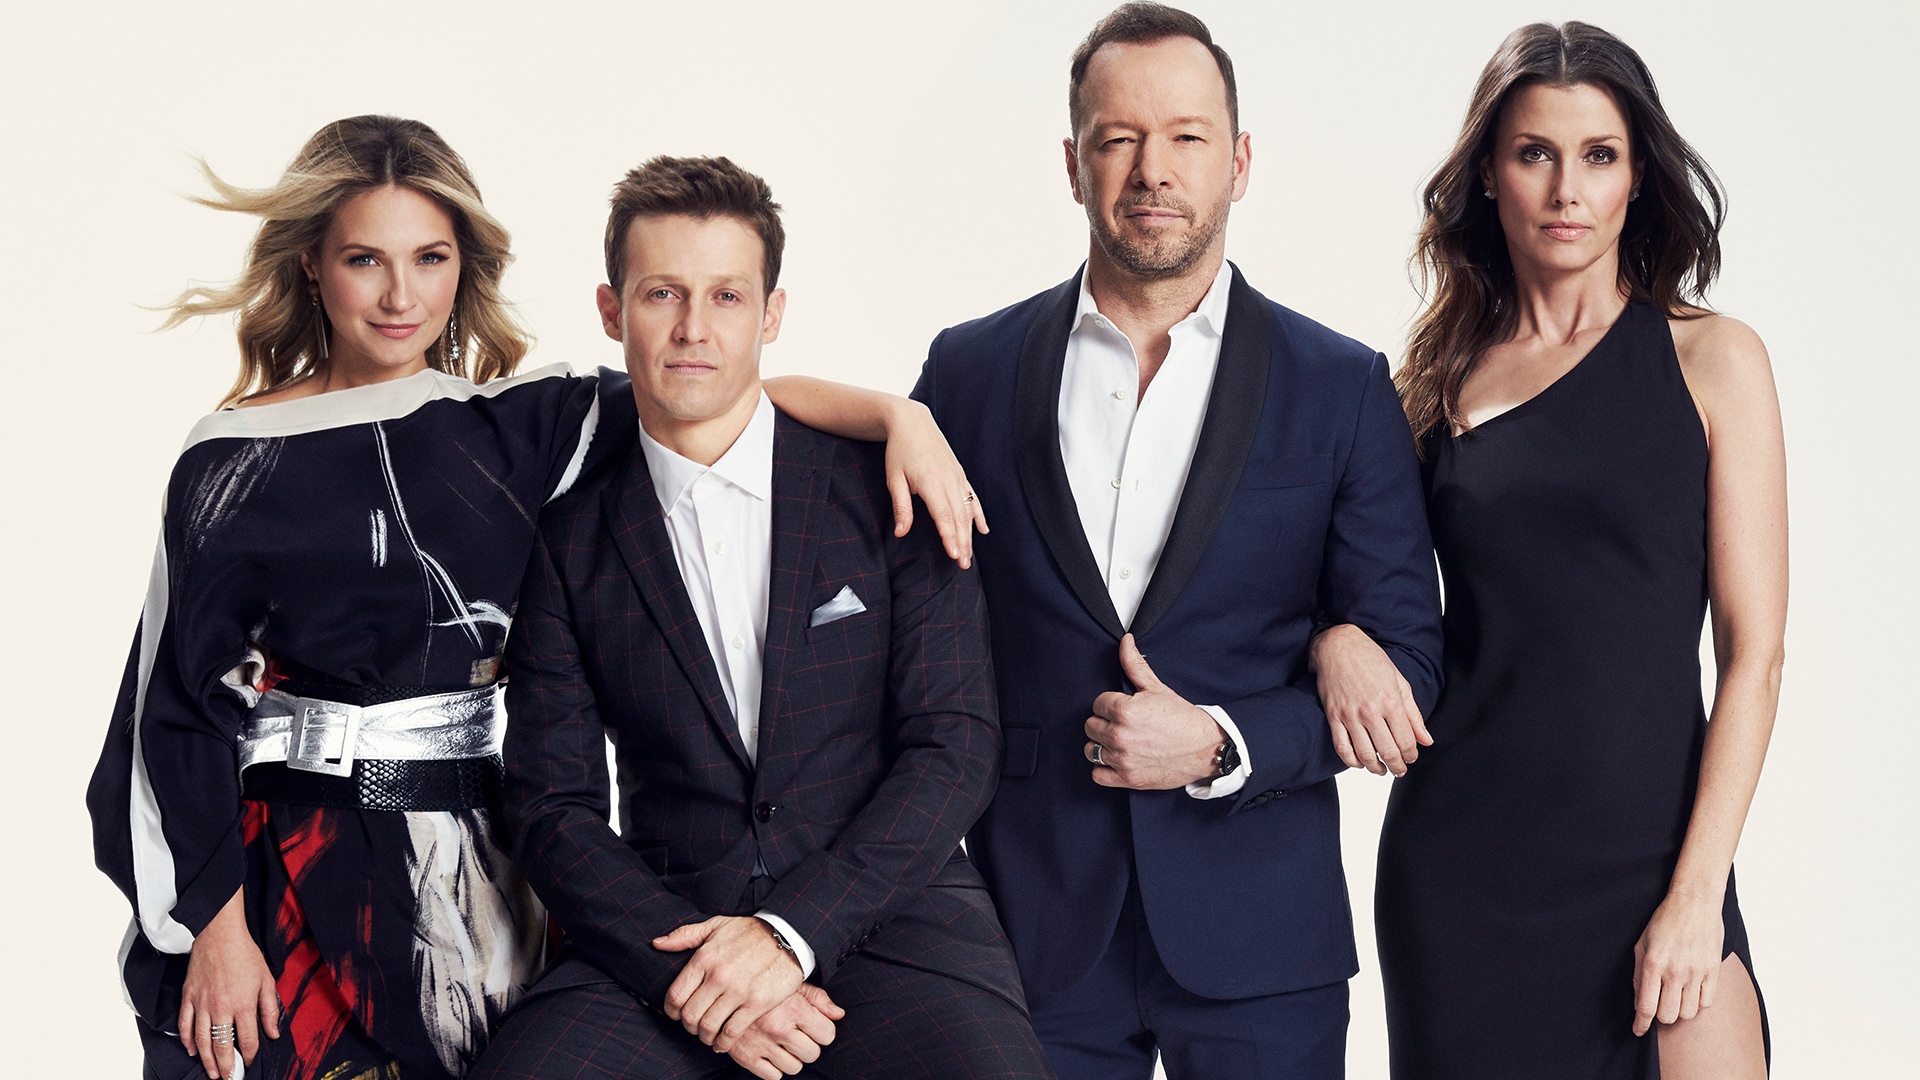 Blue Bloods: Vanessa Ray, Will Estes, Donnie Wahlberg, Bridget Moynahan